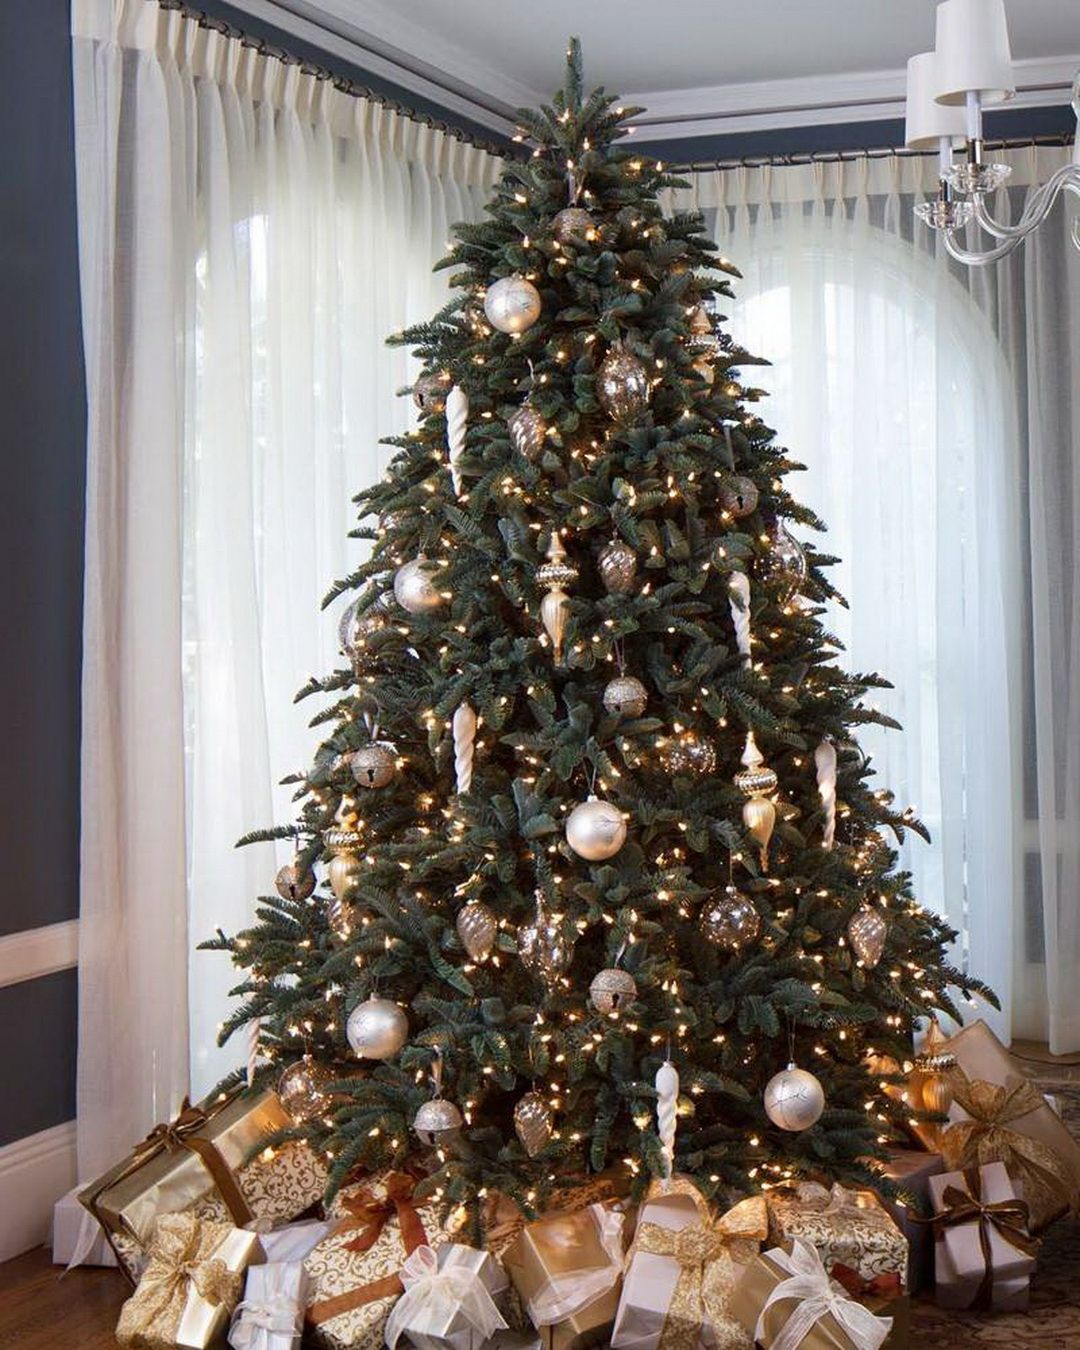 Most Popular Christmas Tree: Always Appreciated For Its Sturdy Branches And Attractive